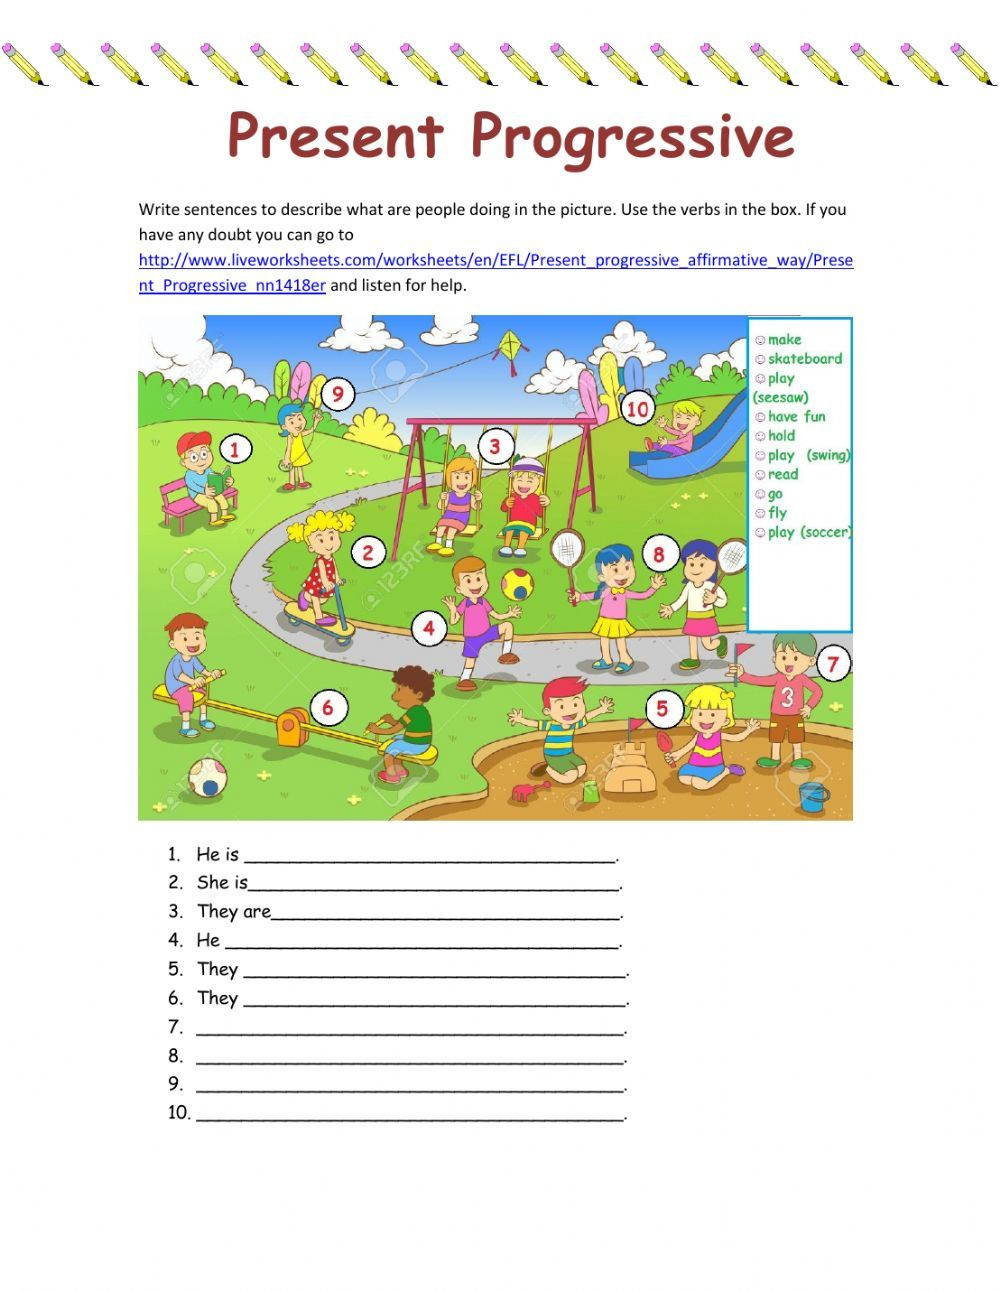 Present Continuous Interactive And Downloadable Worksheet You Can Do The Exercise English As A Second Language Eighth Grade English As A Second Language Esl [ 1291 x 1000 Pixel ]